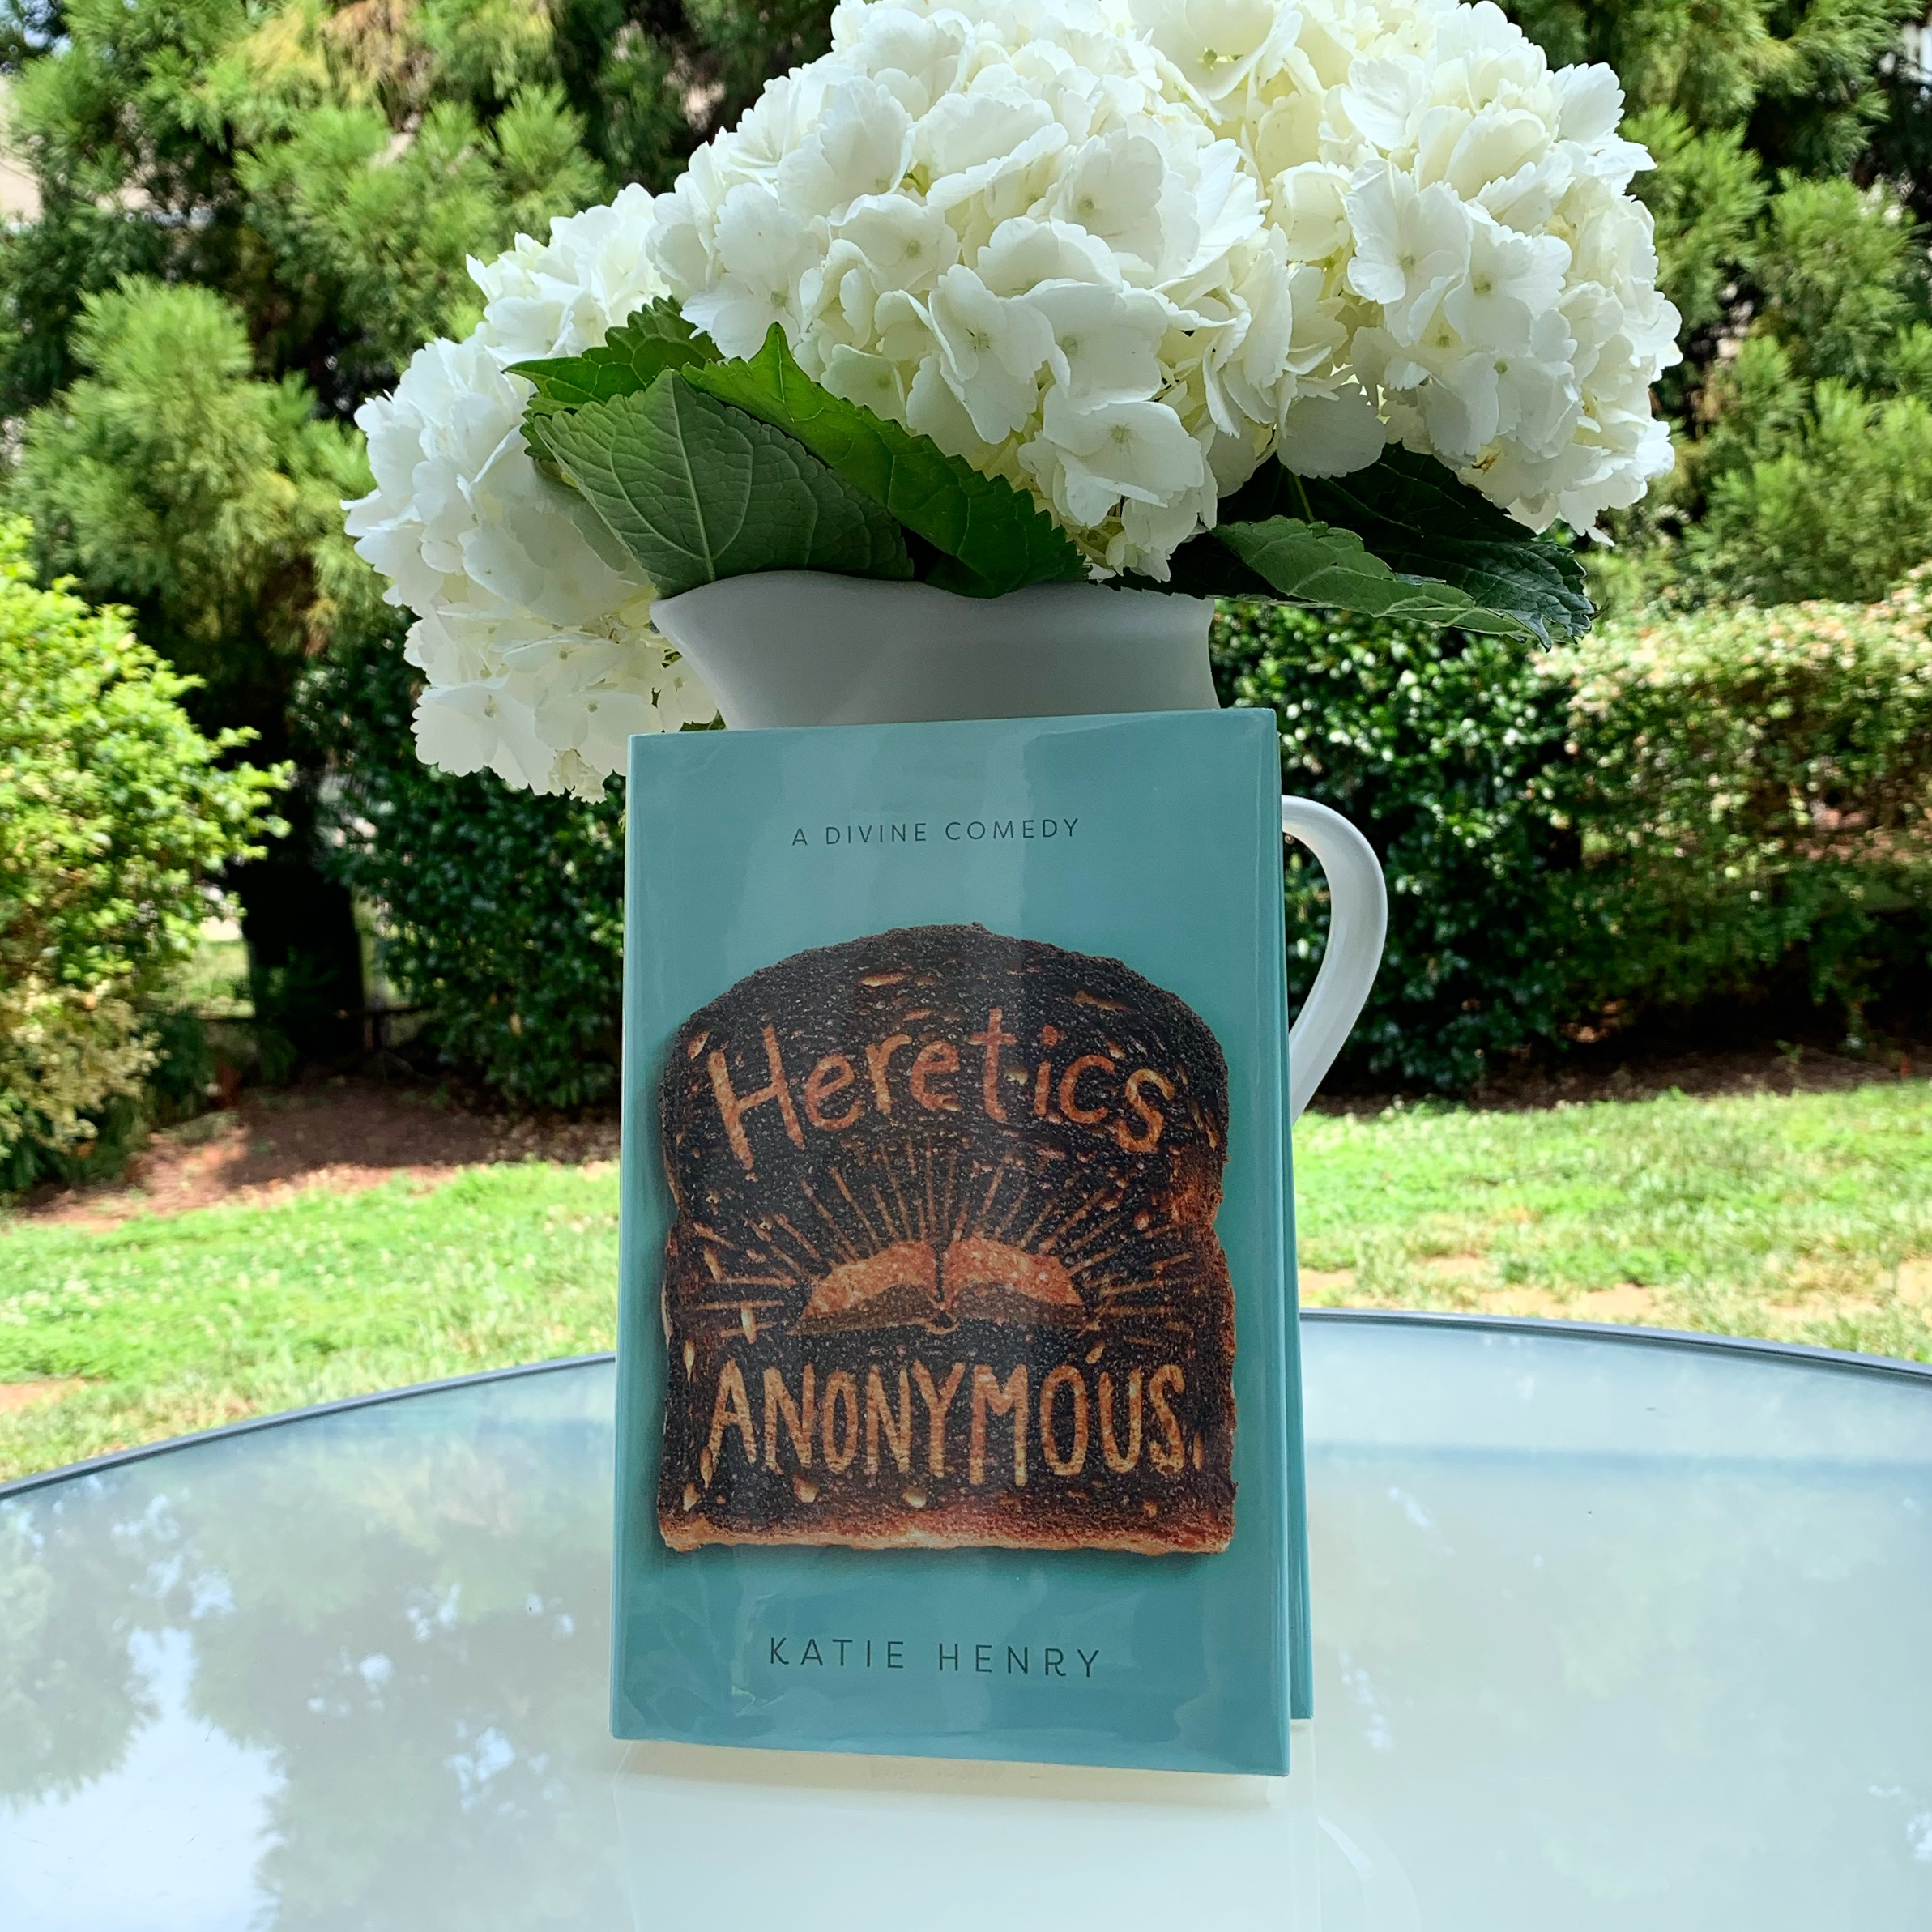 Heretics Anonymous by Katie Henry library book and vase of white hydrangeas